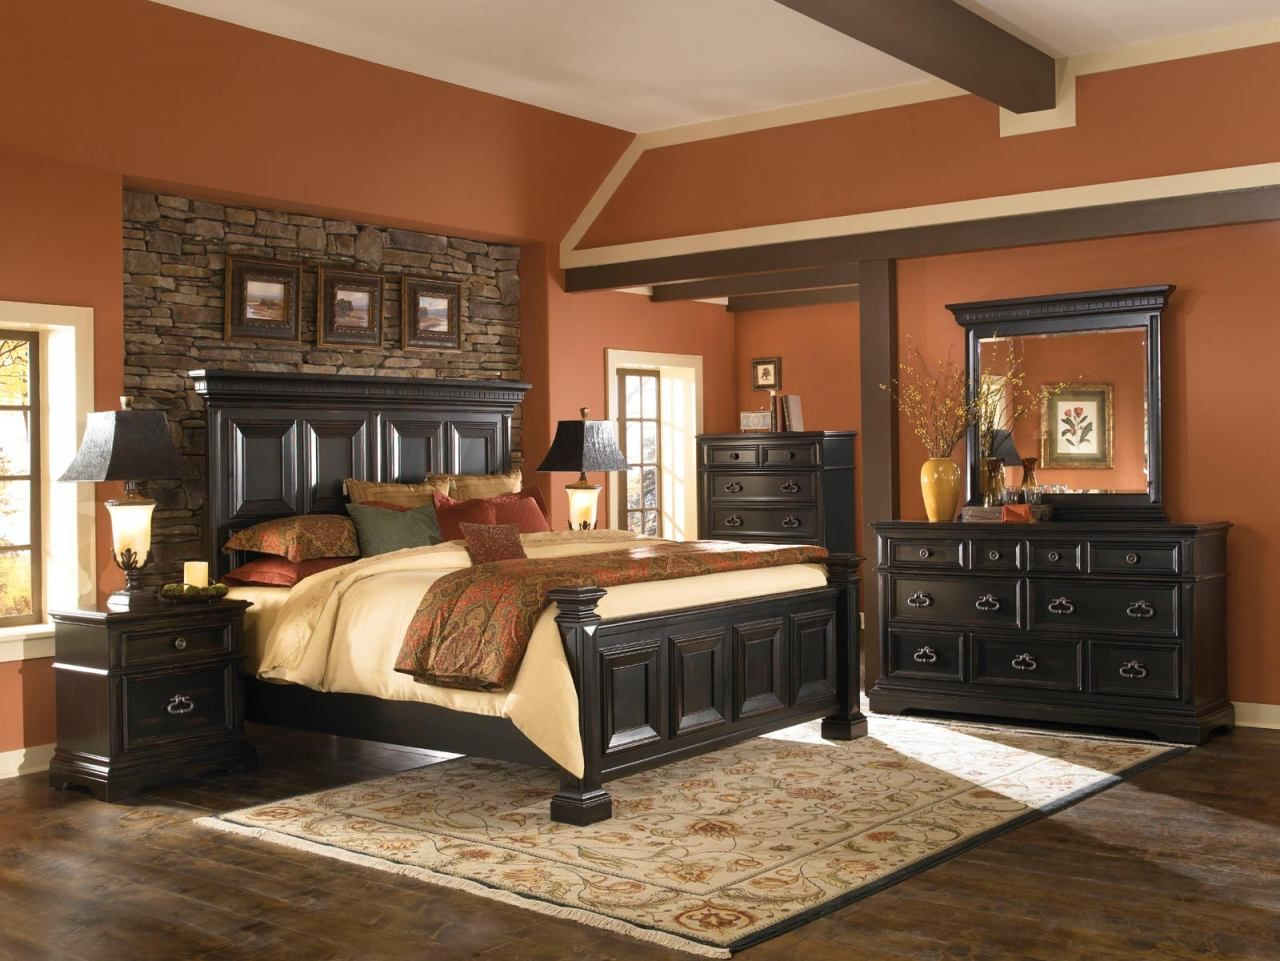 1000  ideas about Bedroom Sets For Sale on Pinterest   Bed sets for sale  Canopy bedroom sets and King size bedroom sets. 1000  ideas about Bedroom Sets For Sale on Pinterest   Bed sets